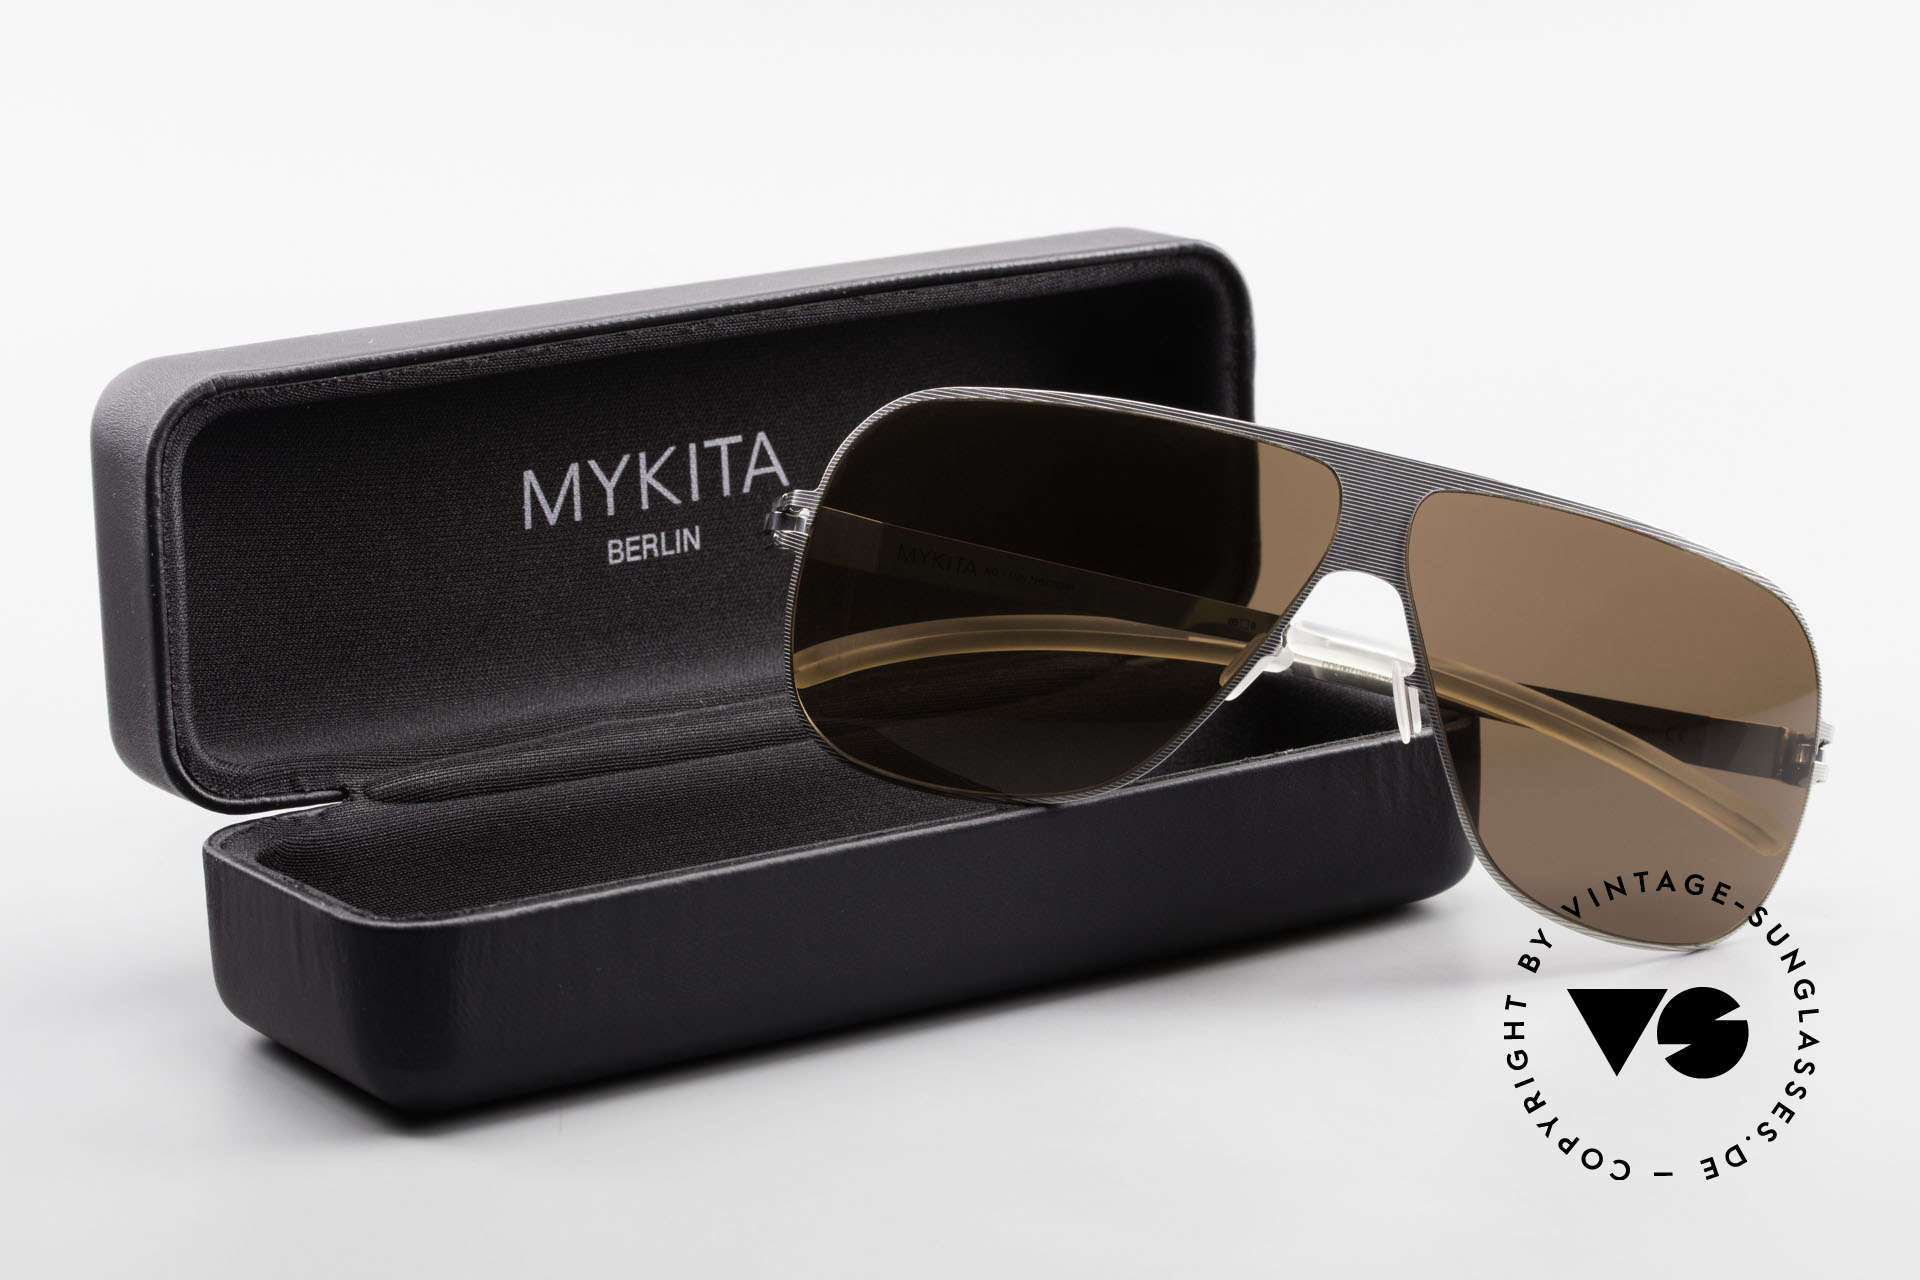 Mykita Hector Aviator Men's Sunglasses 2009's, Size: large, Made for Men